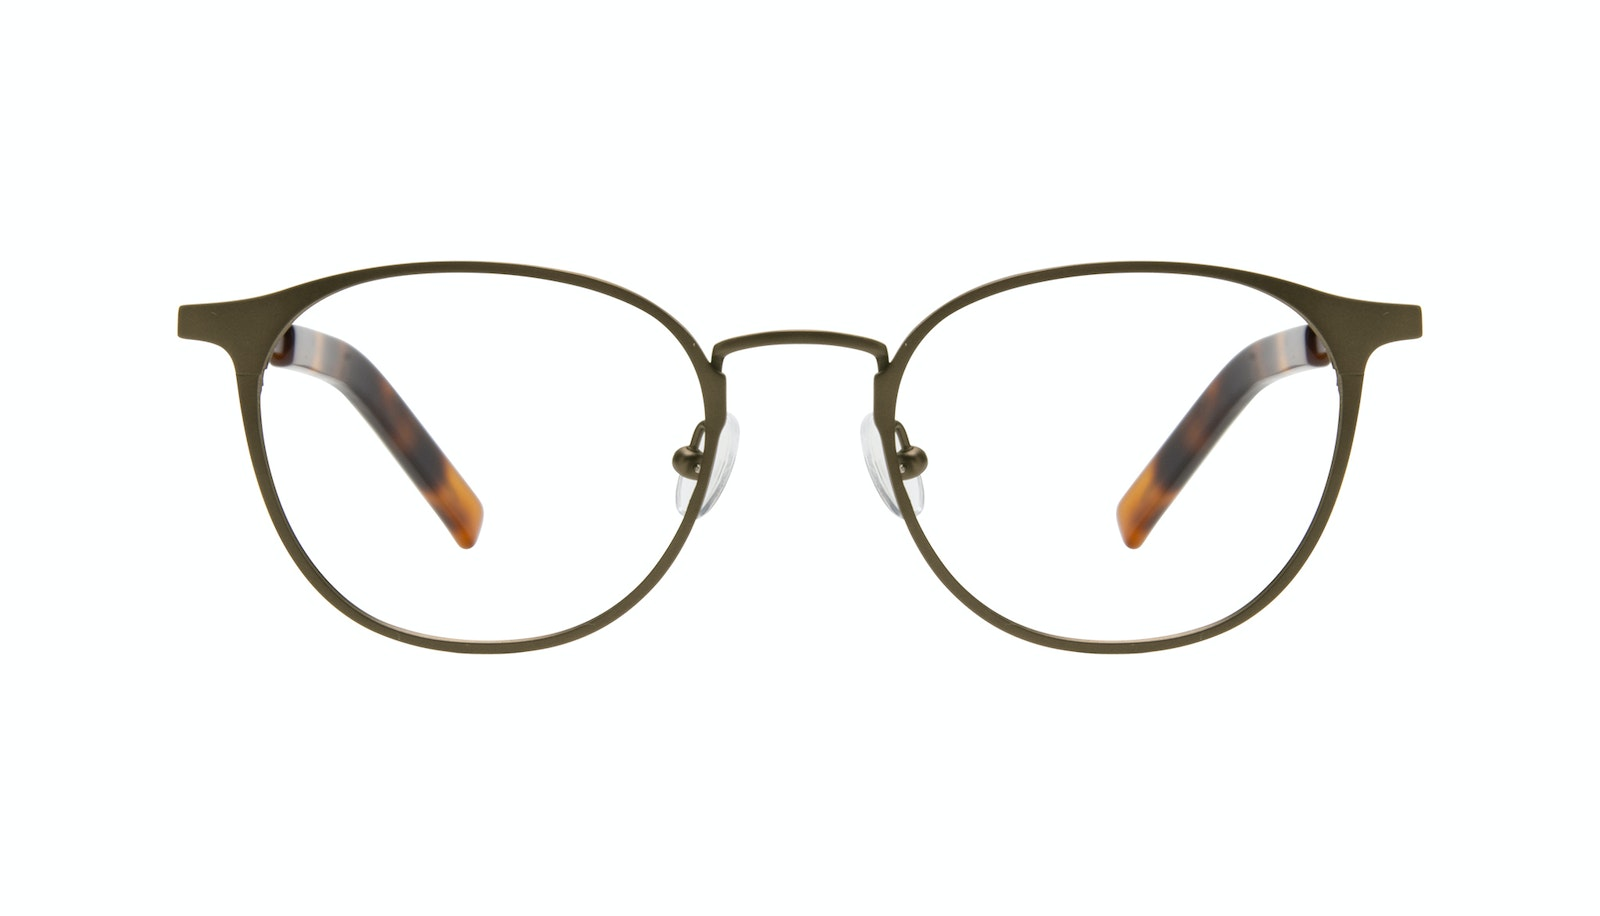 Affordable Fashion Glasses Round Eyeglasses Men Point Khaki